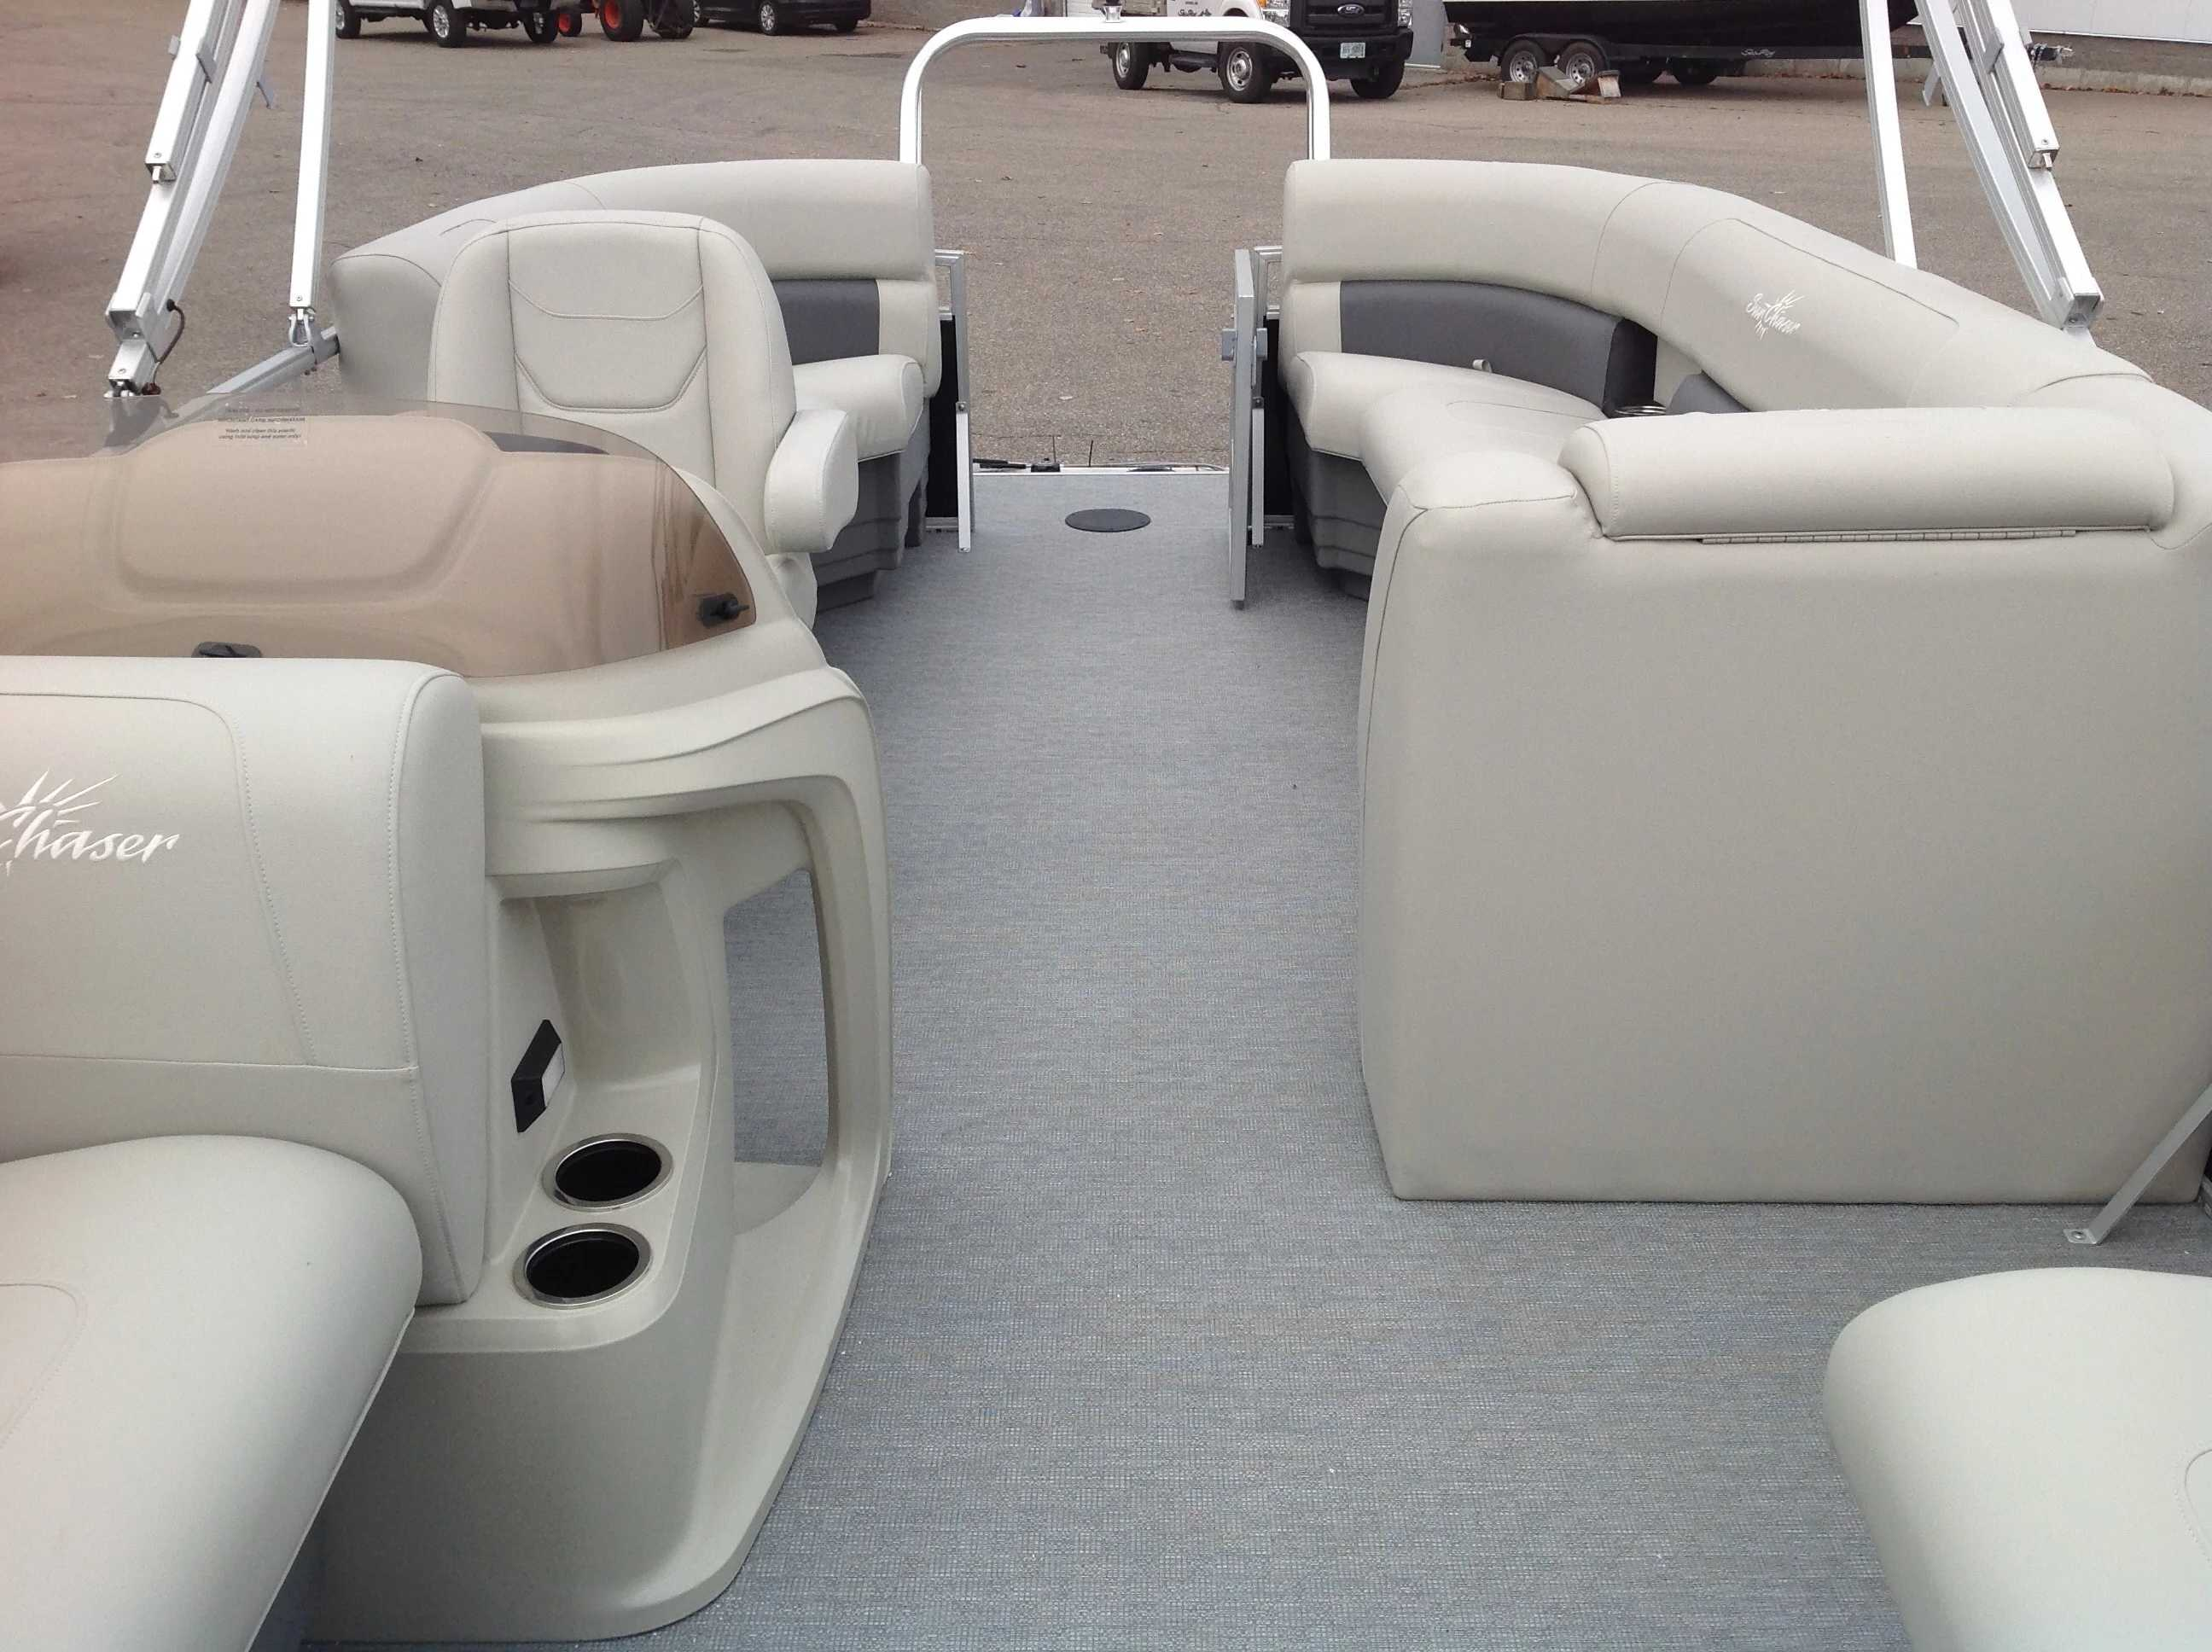 2021 SunChaser boat for sale, model of the boat is Sunchaser & Image # 4 of 10